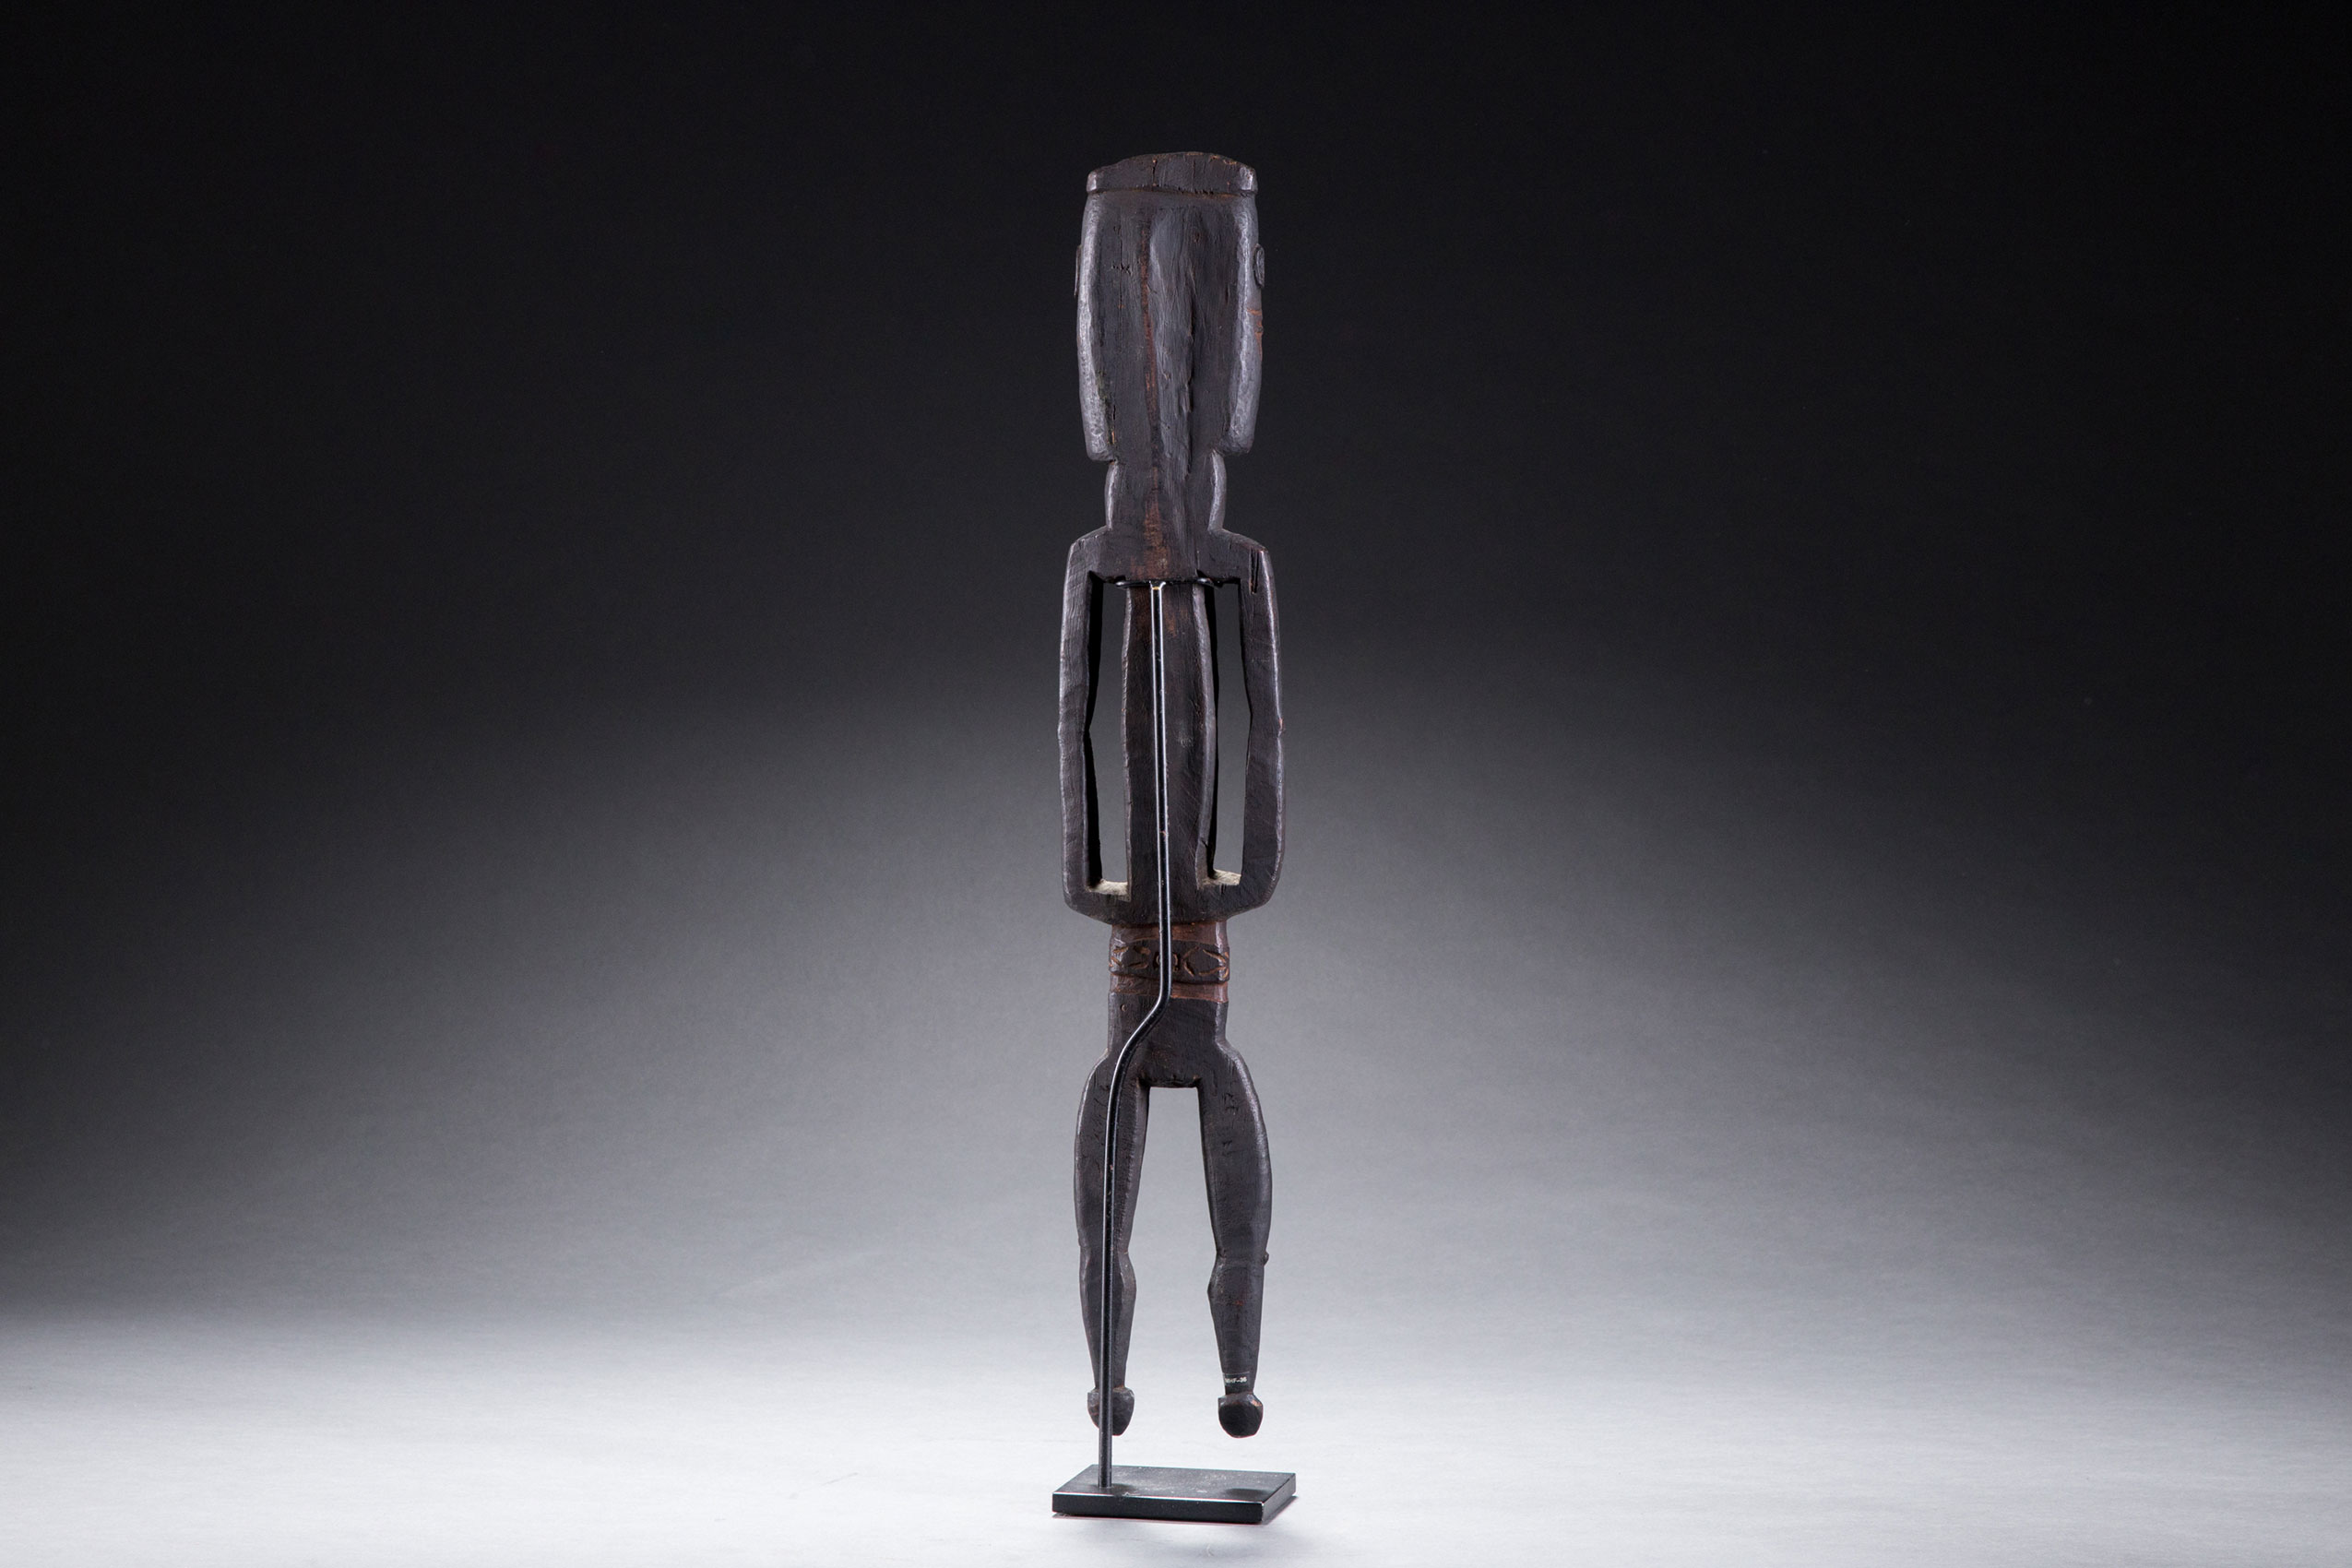 South Pacific art objects and artifacts | Turama or Bamu River figure